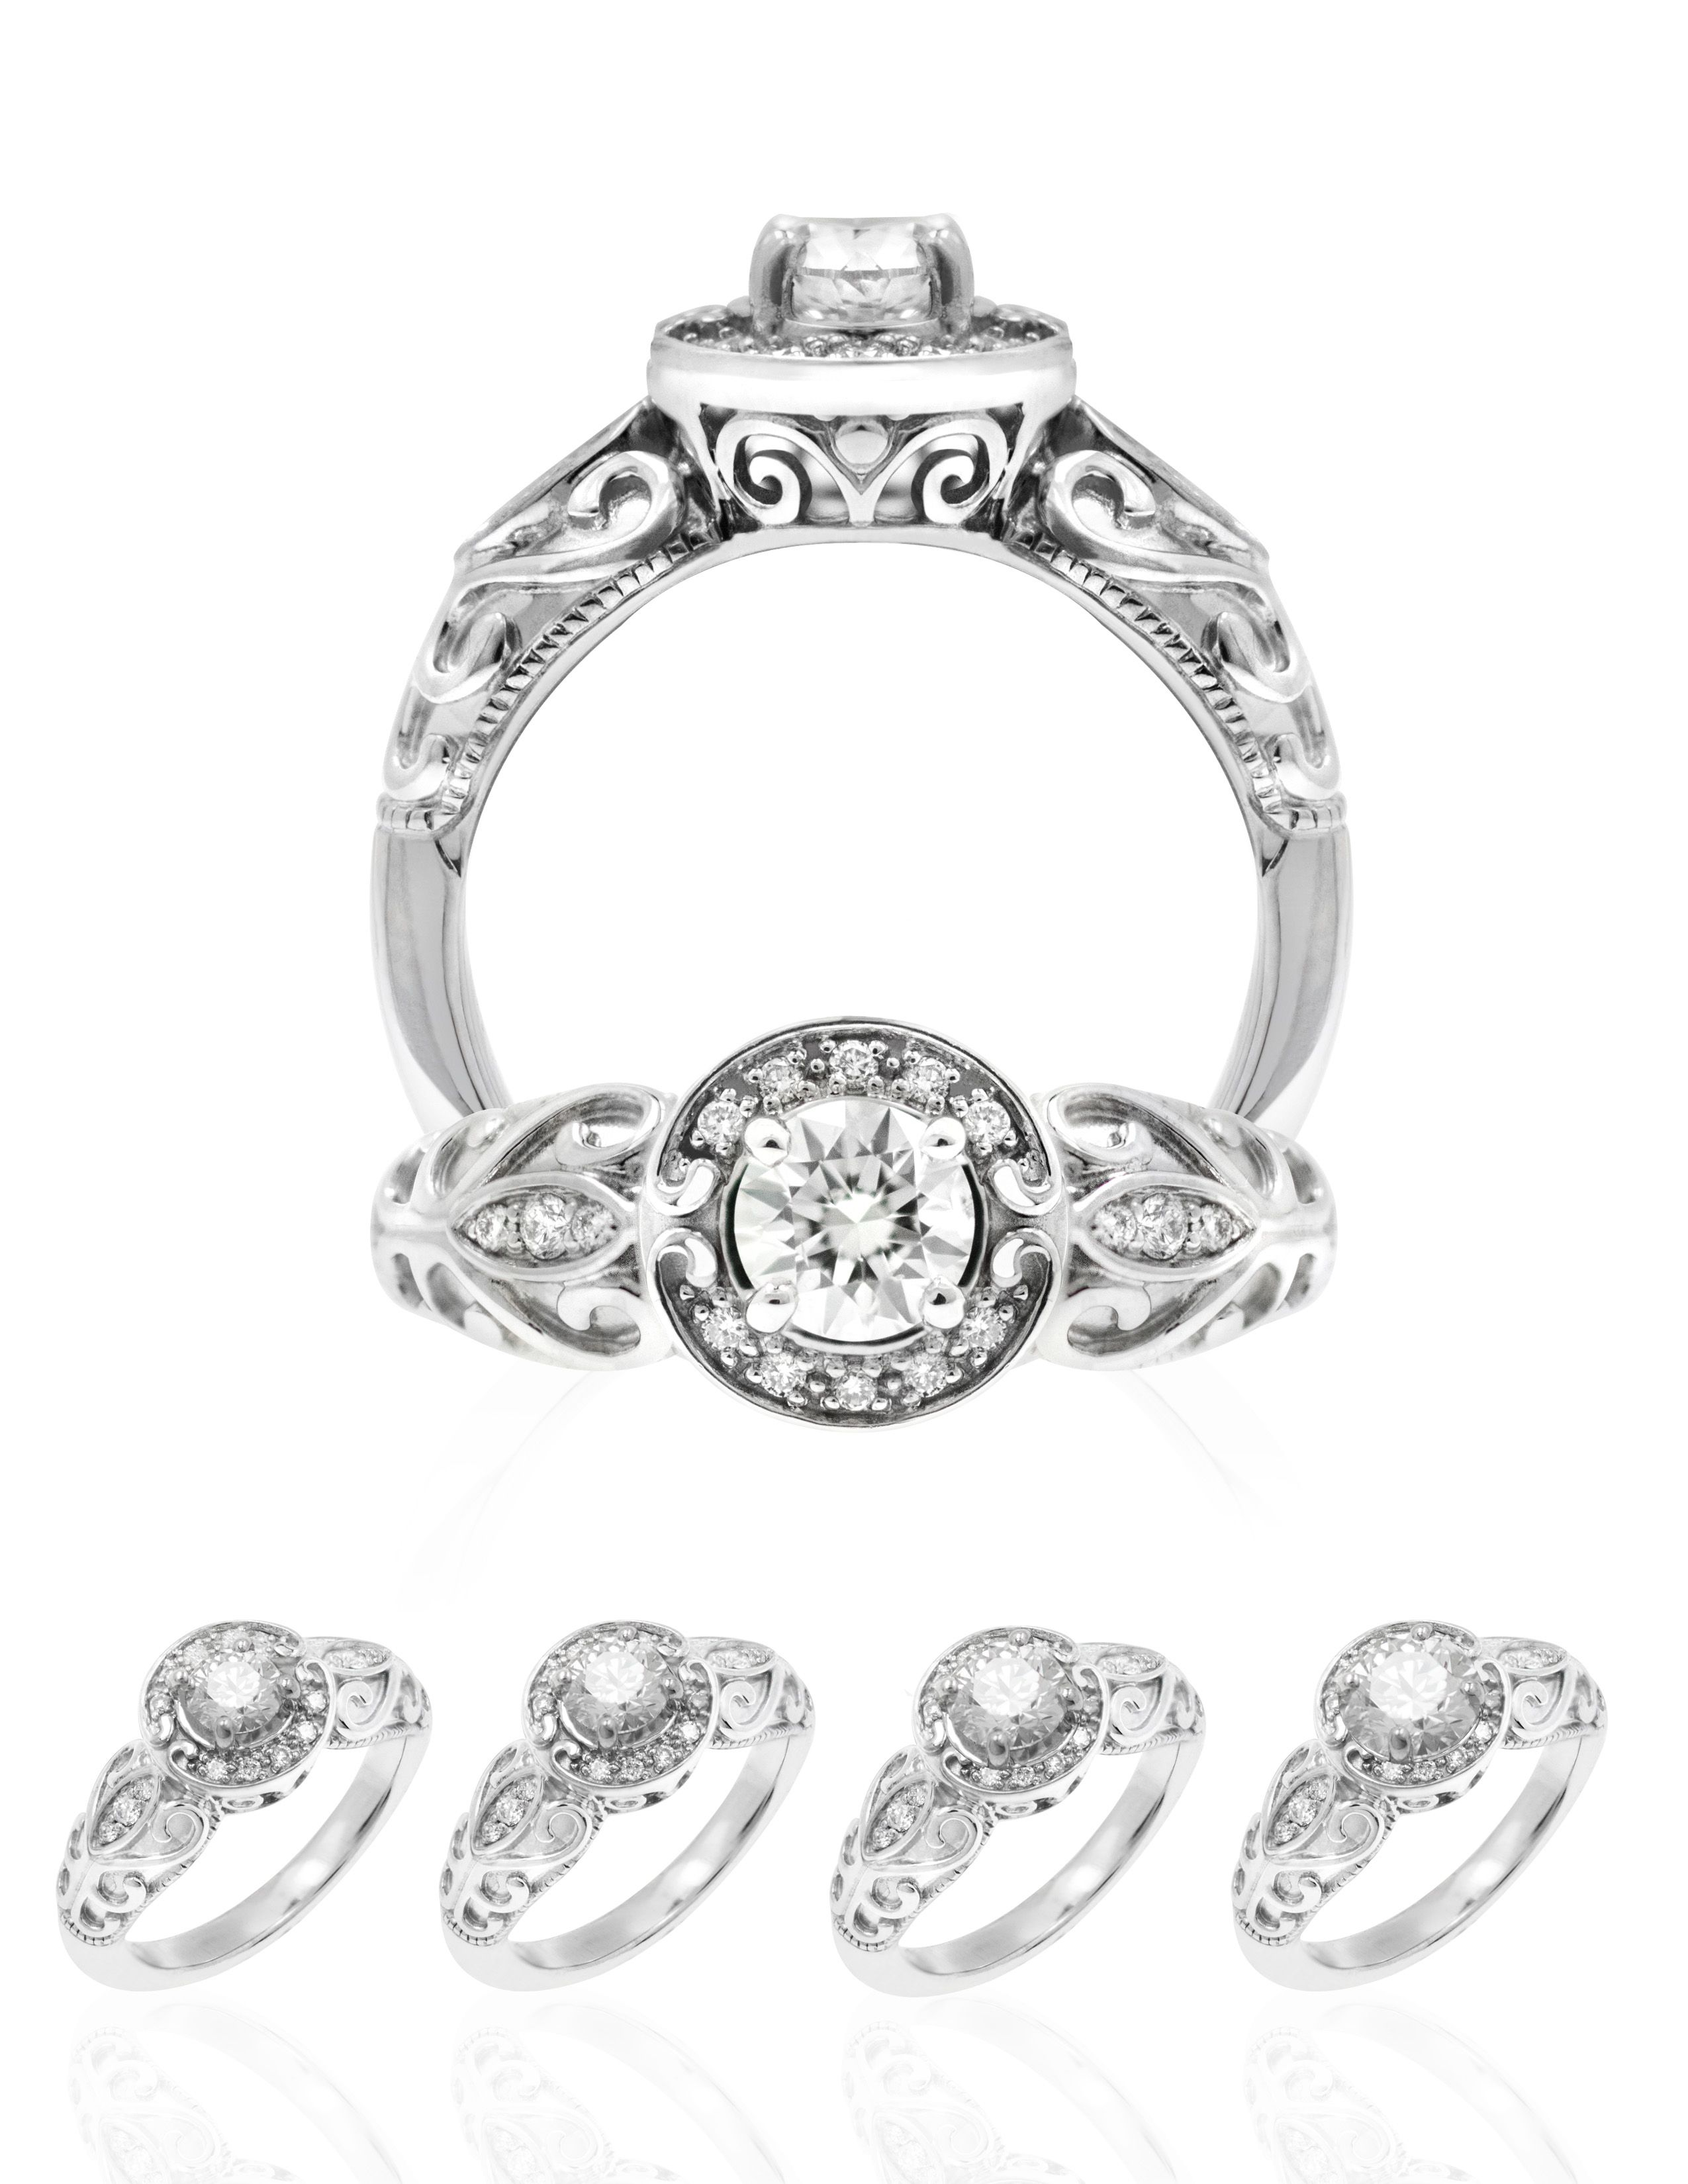 Kapili Lei Hawaiian Wedding Ring Available in white gold or